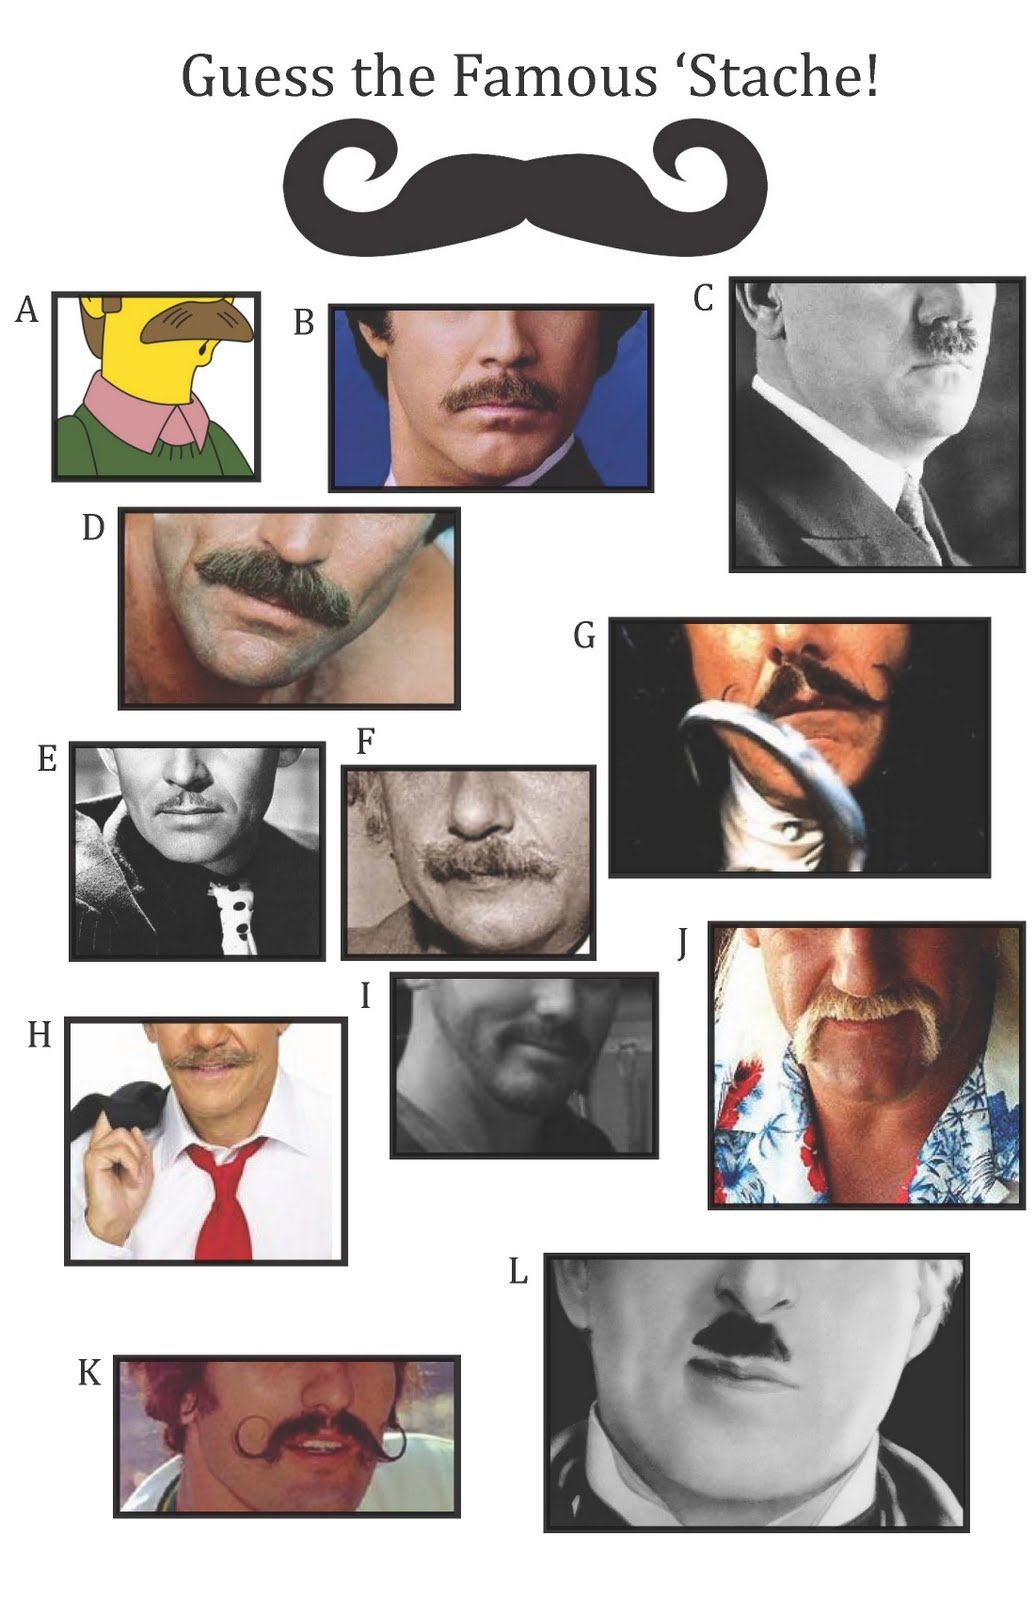 Guess The Famous 'stache ~ For The Mustache Match Game | Let's Get - Name That Mustache Game Printable Free